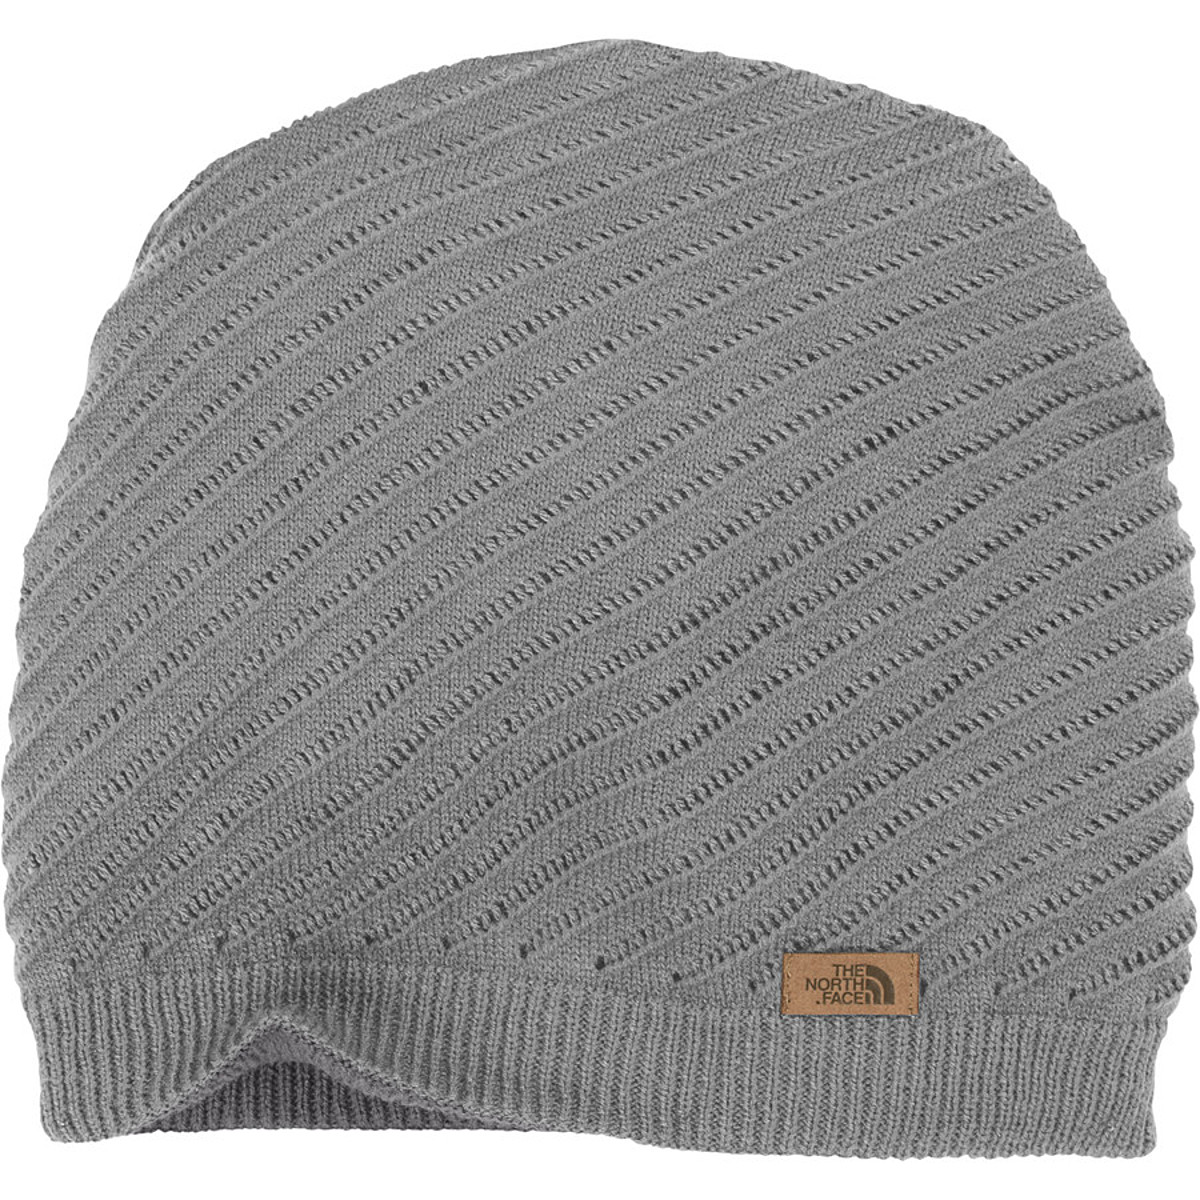 The North Face Later Gaiter Beanie